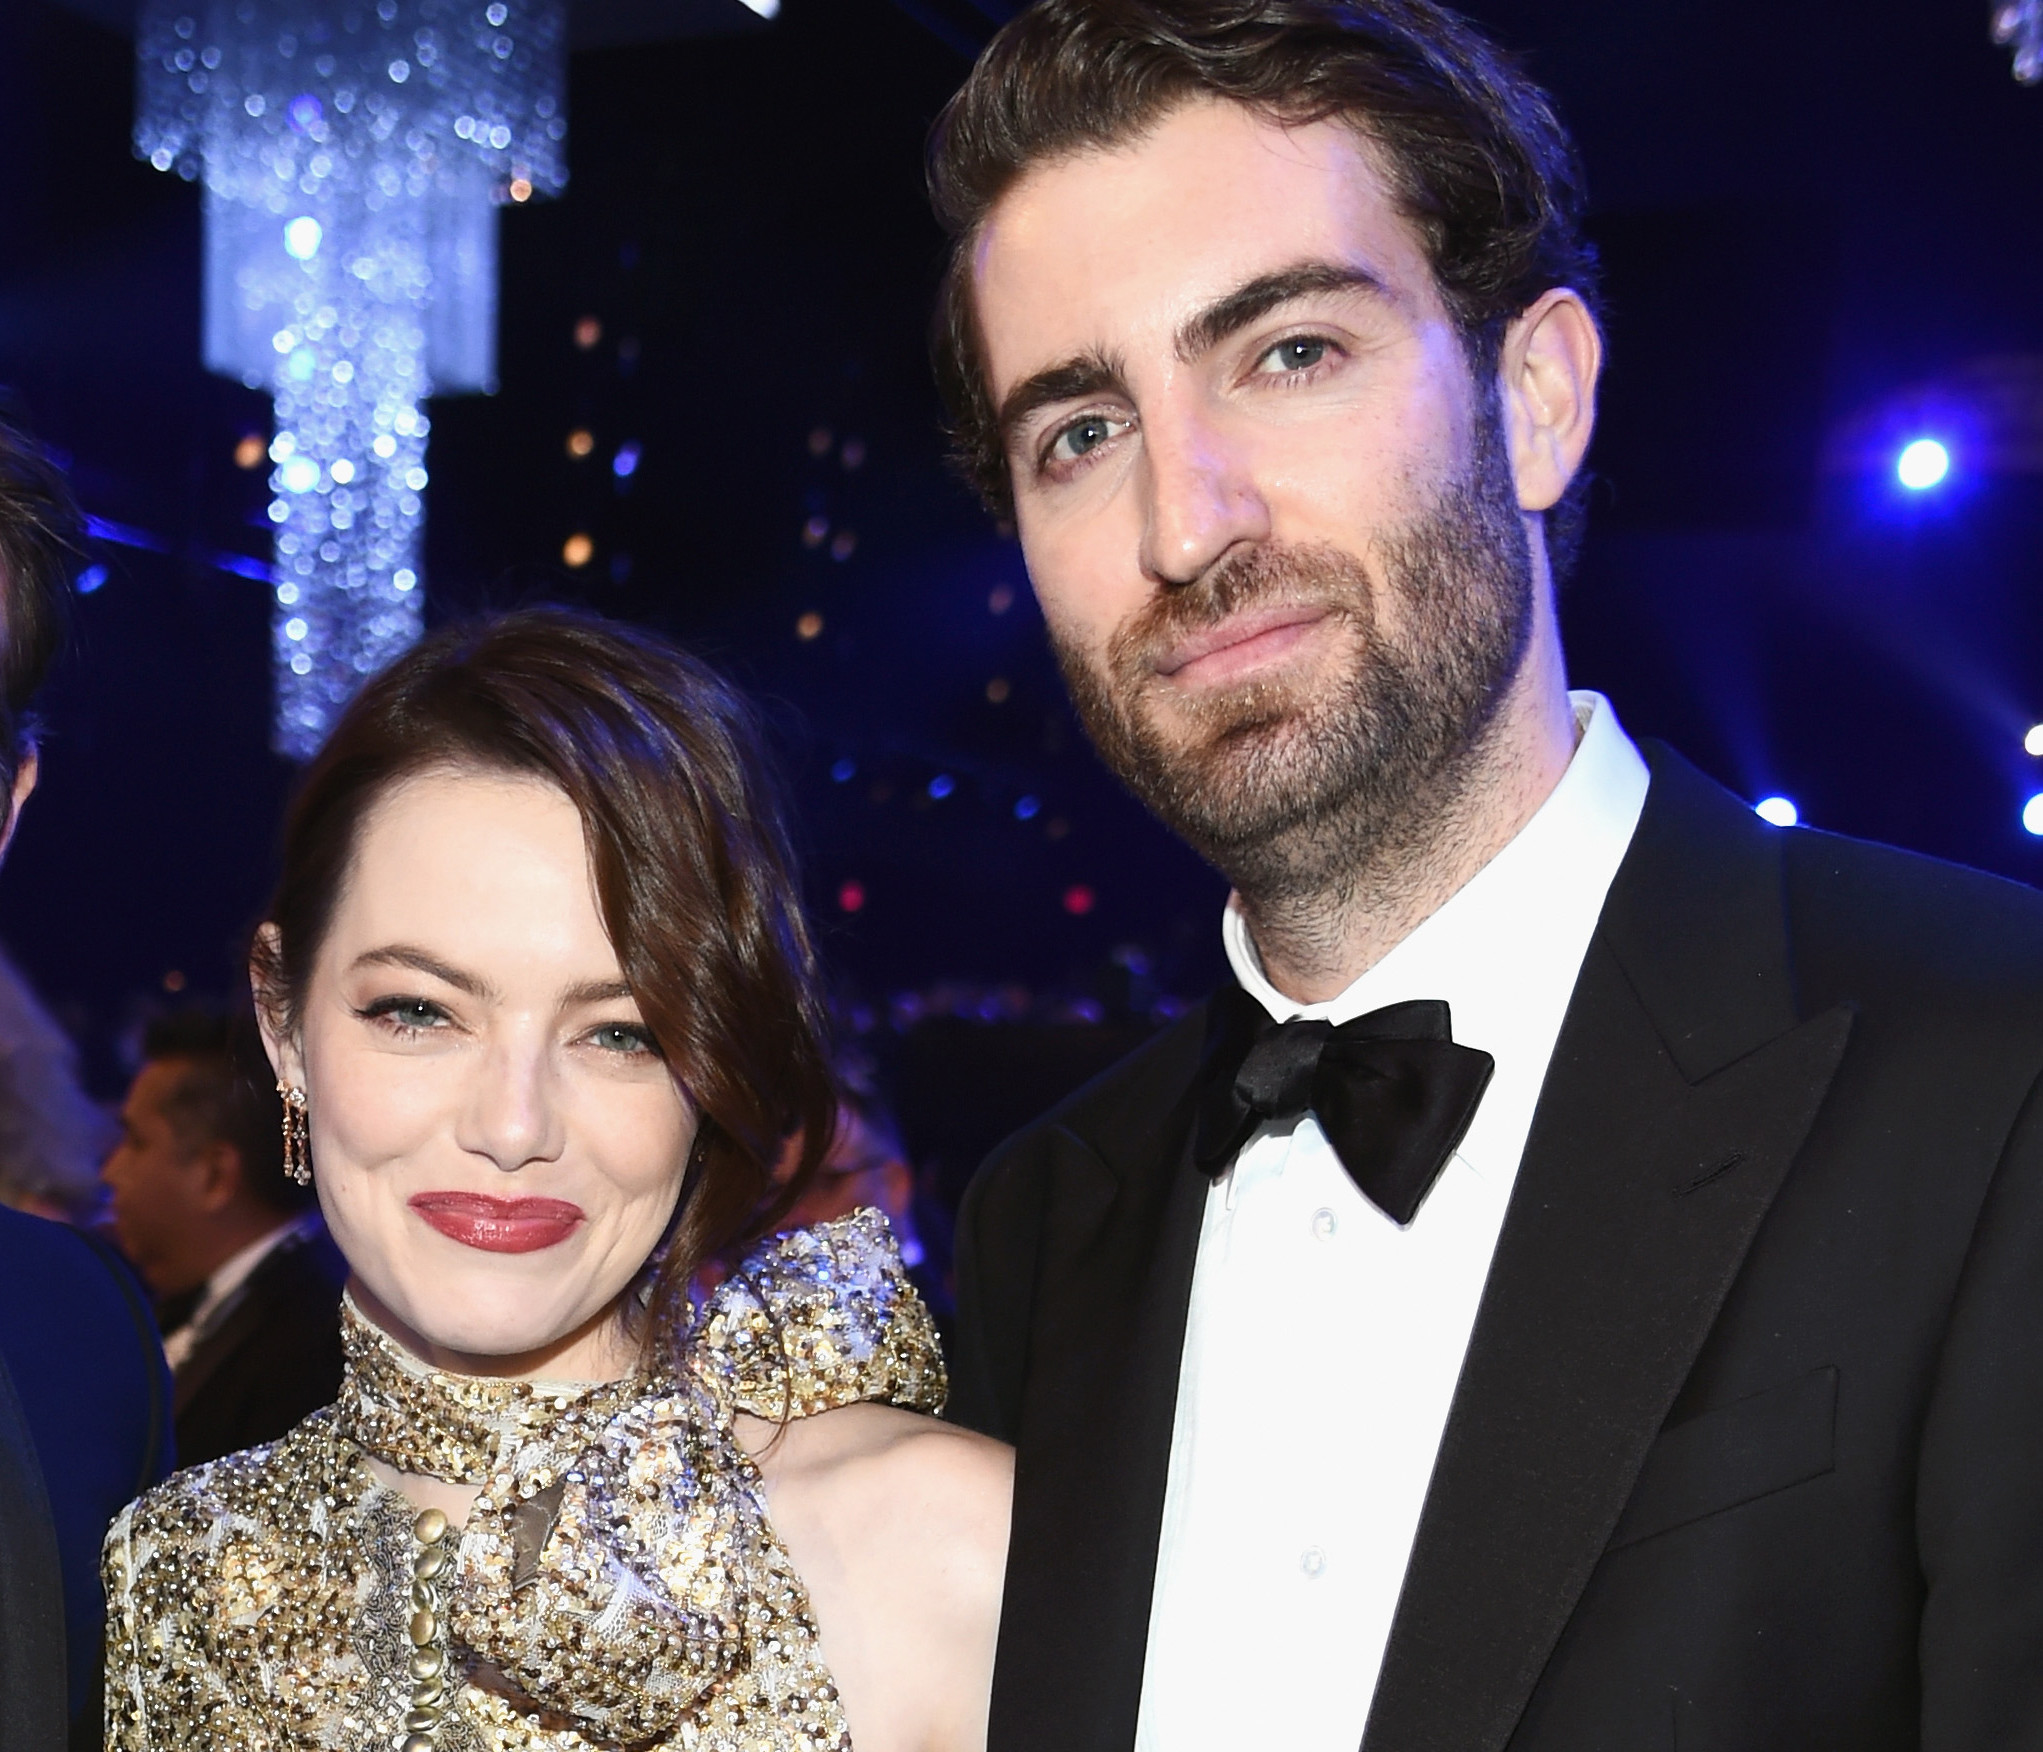 Emma Stone engaged to 'SNL' writer Dave McCary after two years of dating